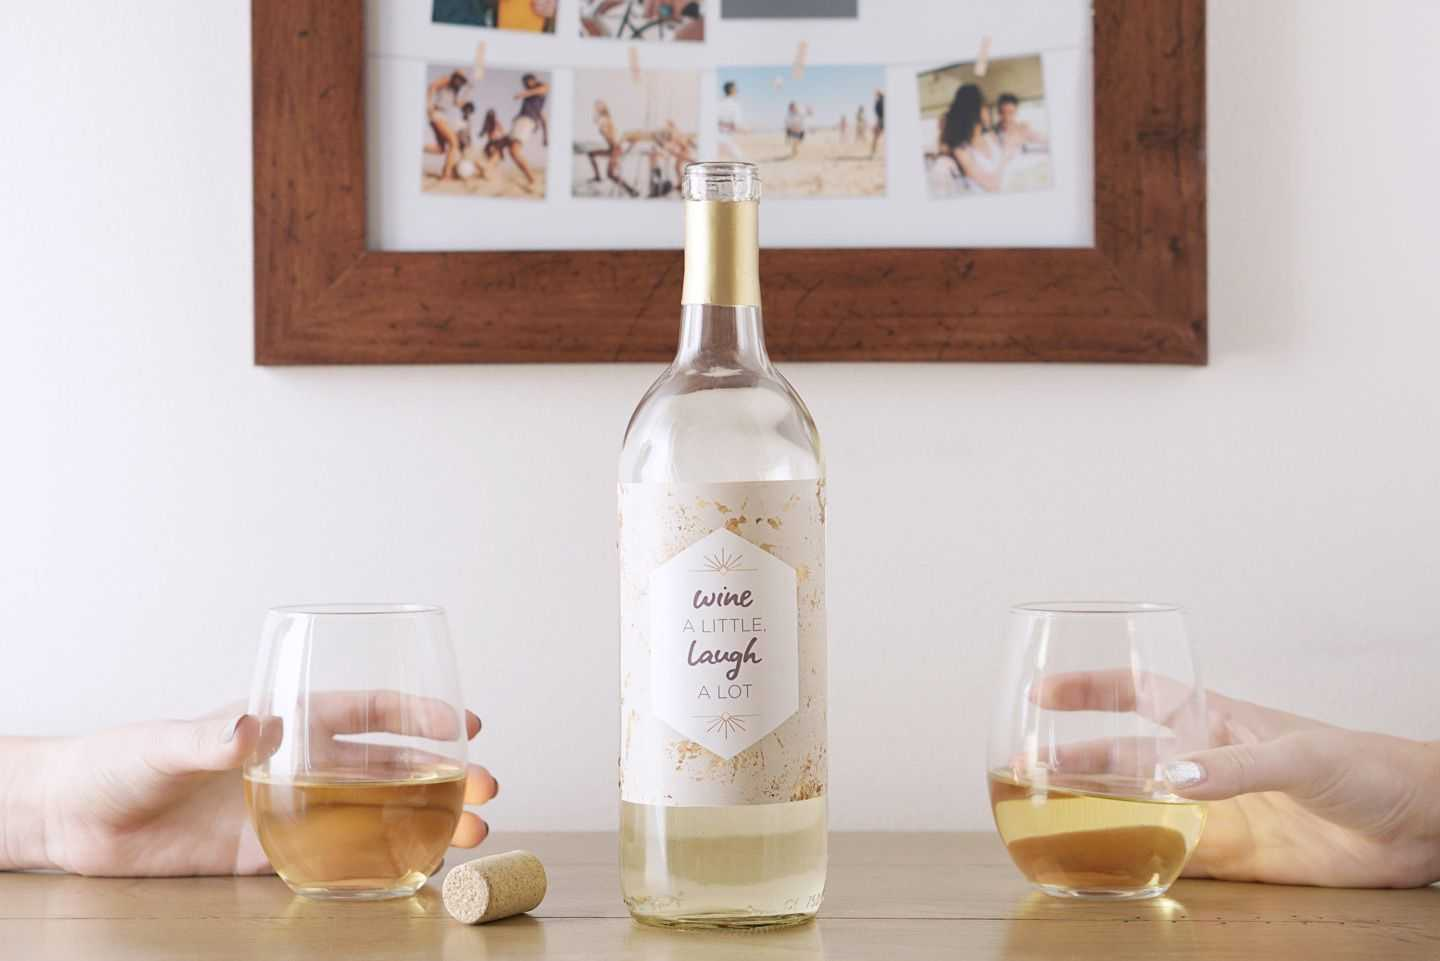 Free Diy Wine Label Templates For Any Occasion Intended For Diy Wine Label Template